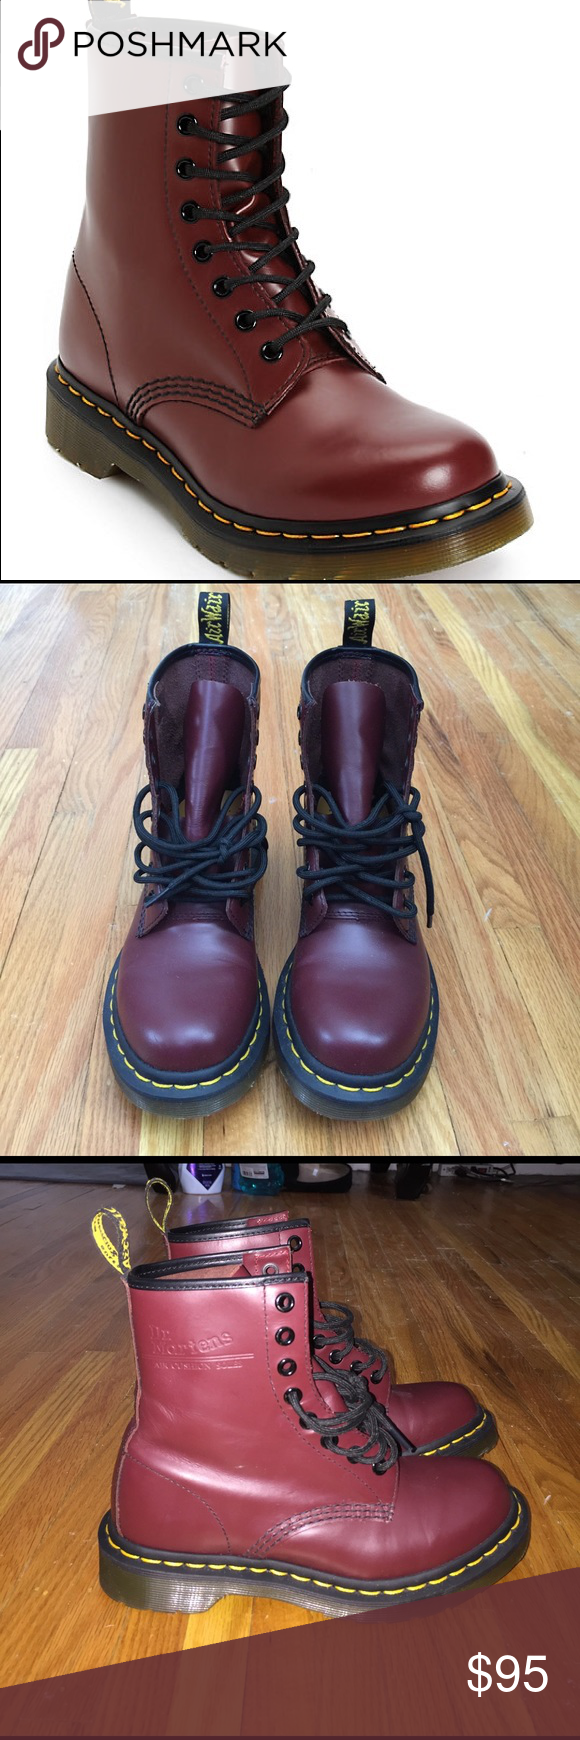 🎉Red 1460 Smooth Doc Martens🎉 Size 5 doc marten combat boots. Only wore around the house while trying to break in. Selling because I'm going on vacation and already have black so I'd rather use some money. Never worn outside! Dr. Martens Shoes Combat & Moto Boots